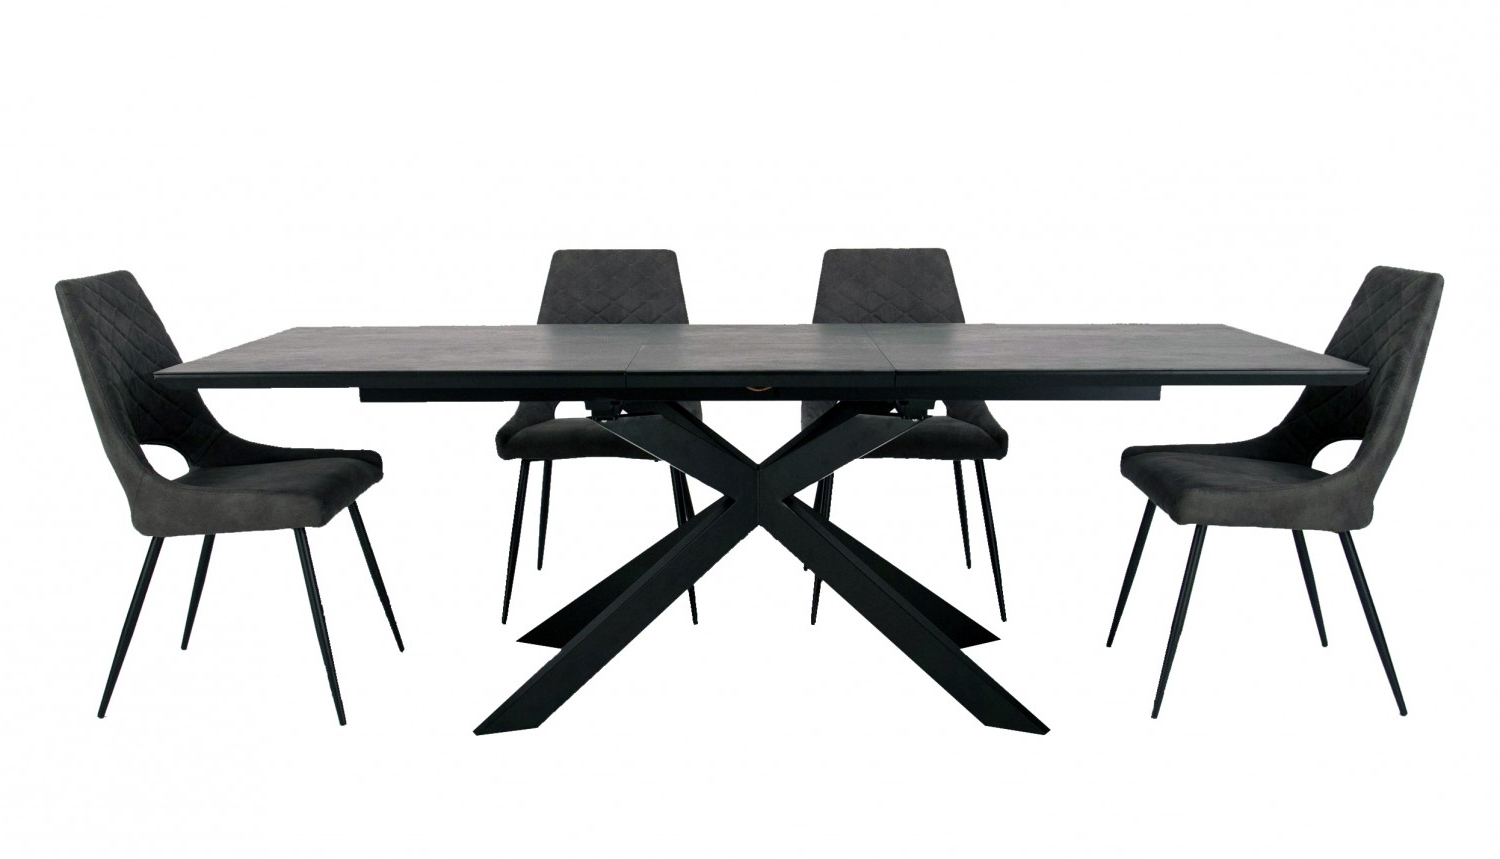 Most Recently Released Milan Extending Dining Table With Matt Ceramic Top And 4 Dining Chairs Regarding Modern Glass Top Extension Dining Tables In Matte Black (Gallery 12 of 30)